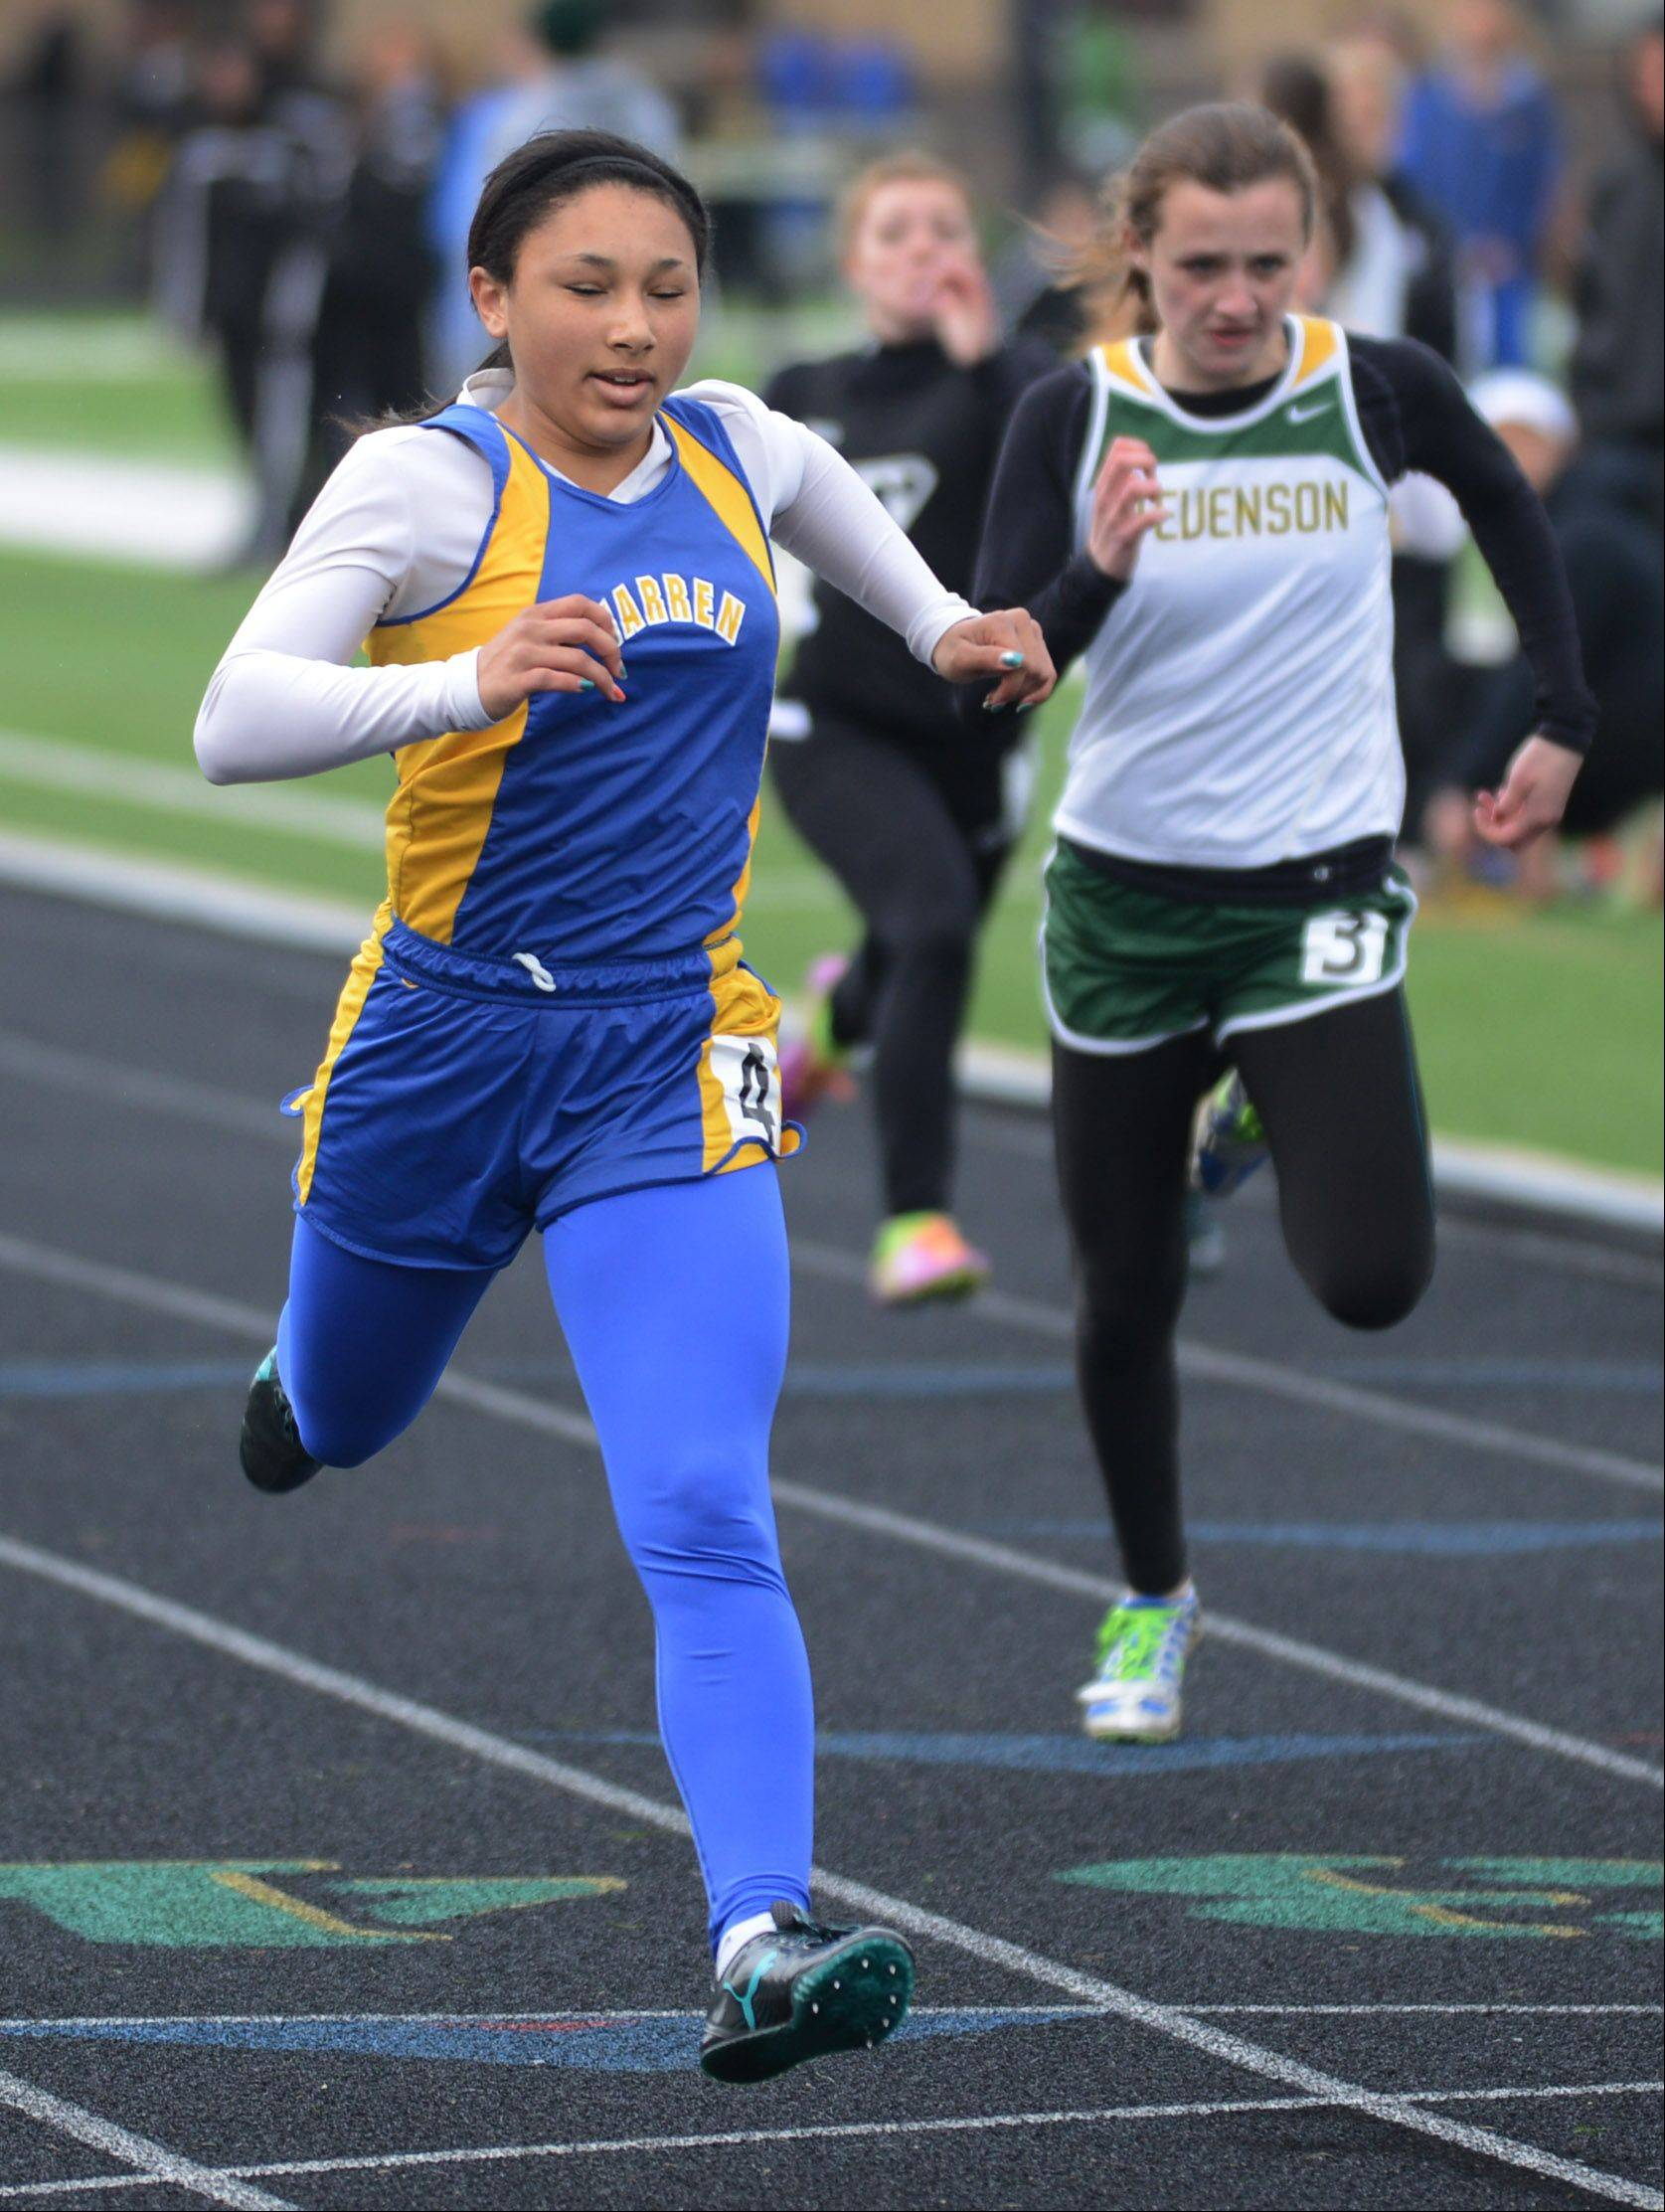 Warren's Autumn Santos, left, comes in first ahead of Stevenson's Charlotte Langbo in a 100-meter dash prelim race at Thursday's North Suburban Conference girls track meet in Lincolnshire.